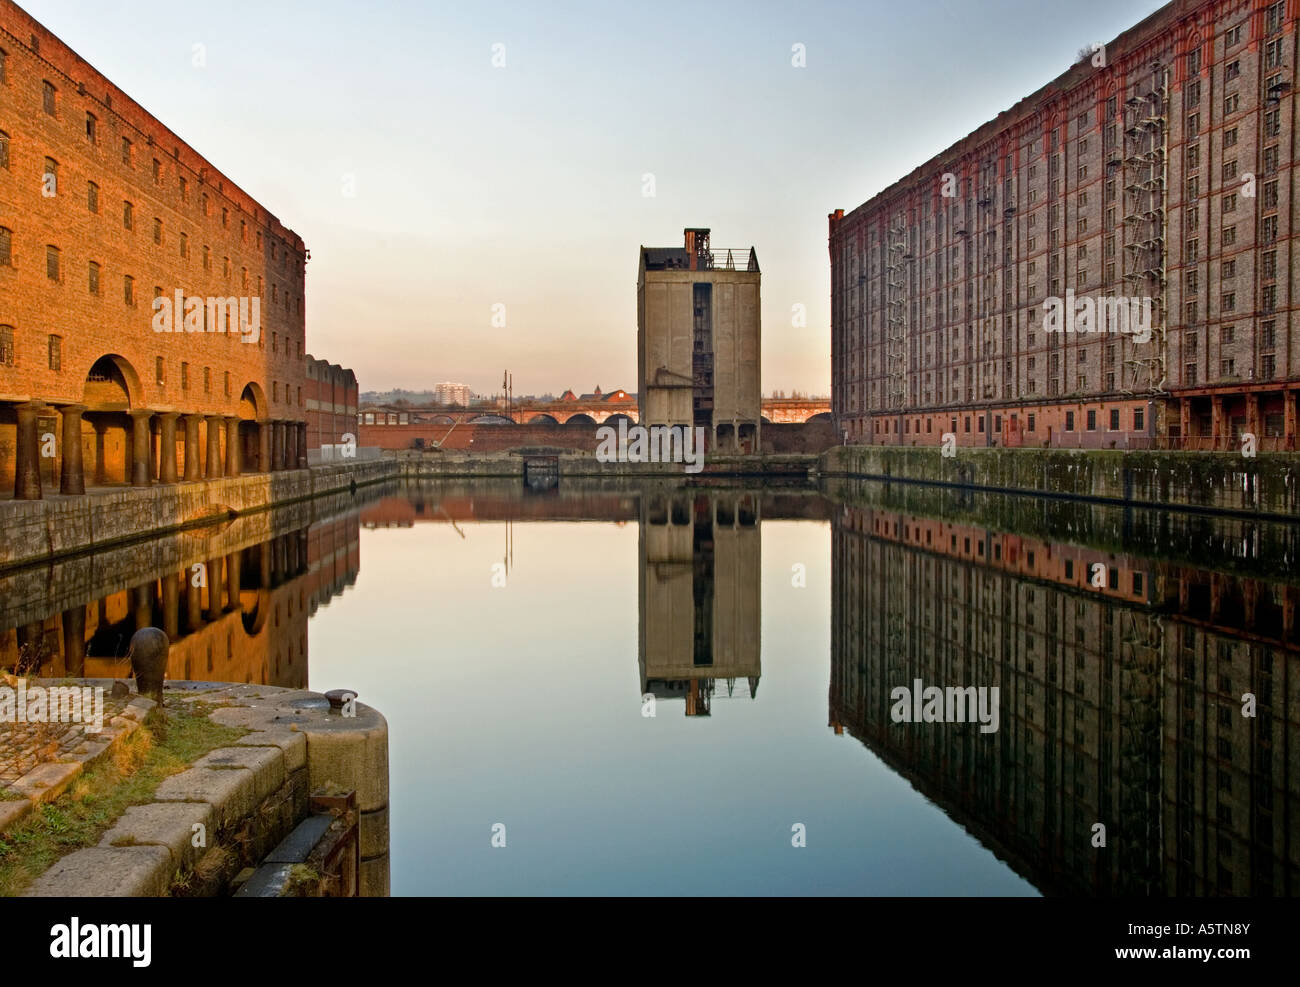 Abandoned Tobacco Warehouses at Stanley Dock, Liverpool, Merseyside, England, UK Stock Photo